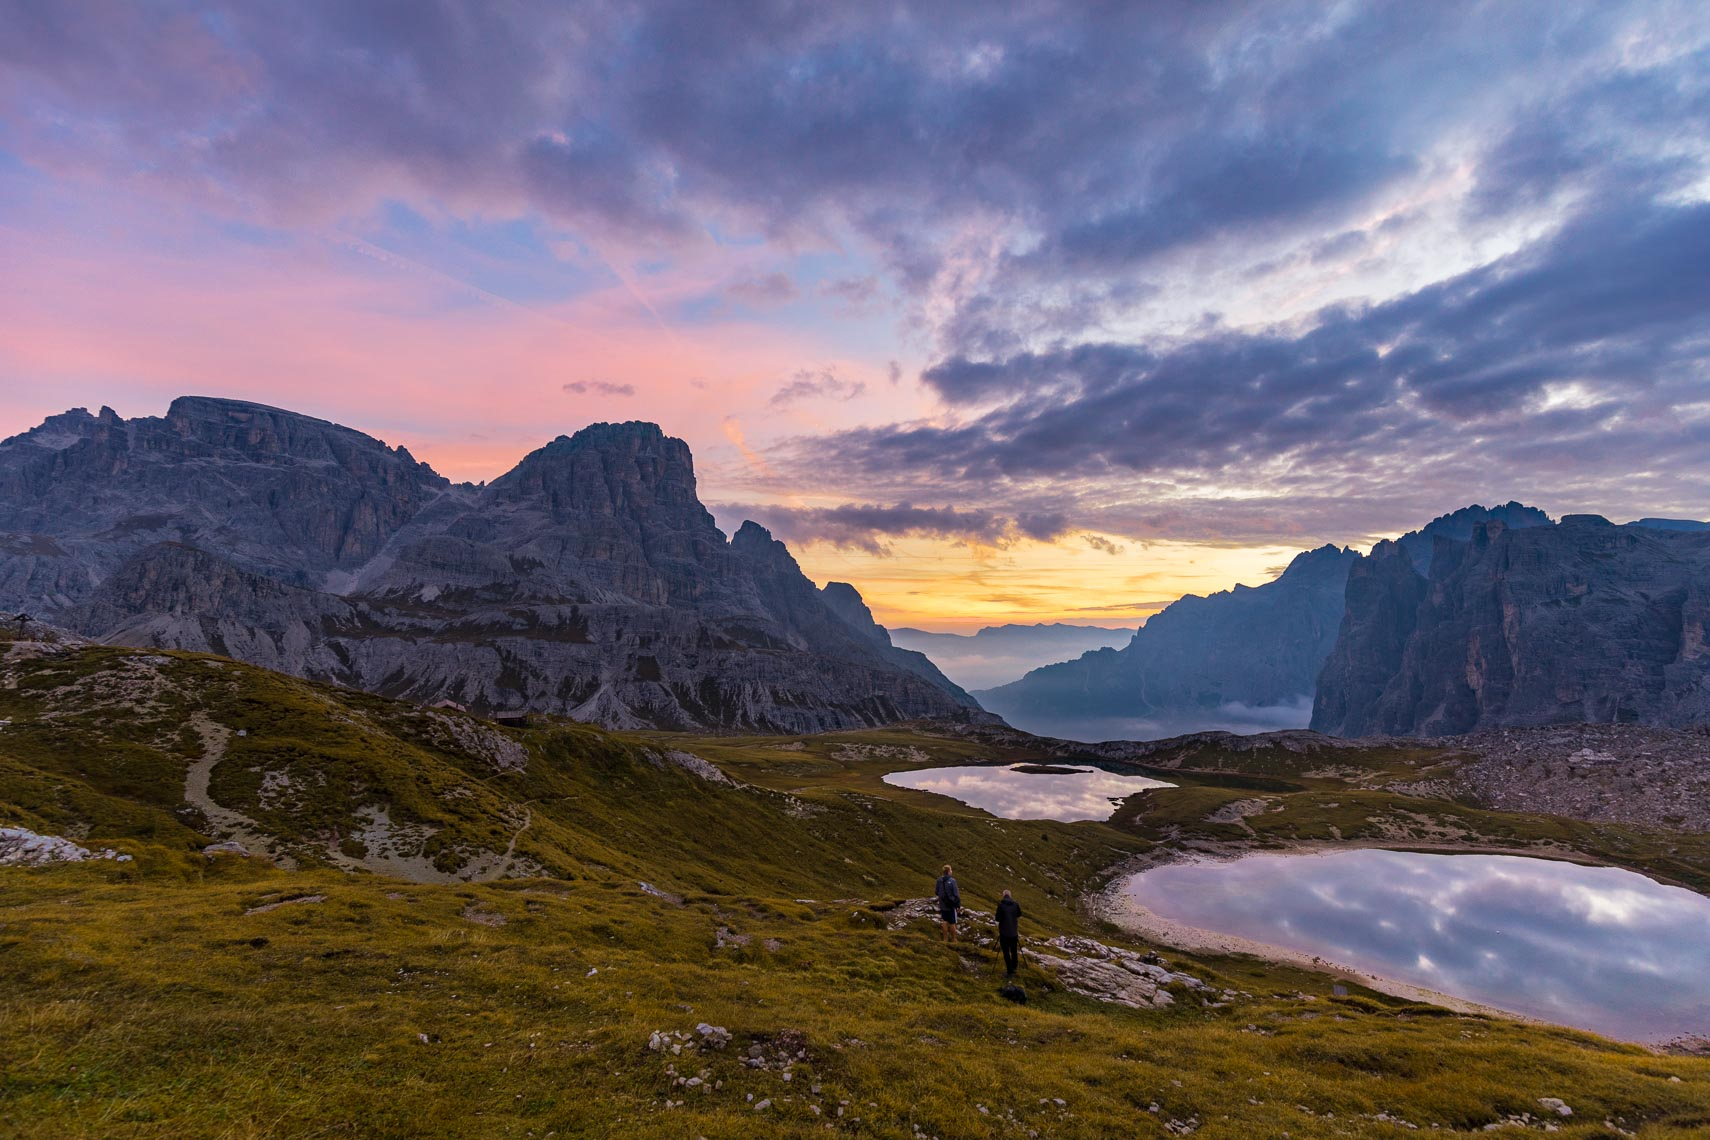 028-Dolomites-Sunrise